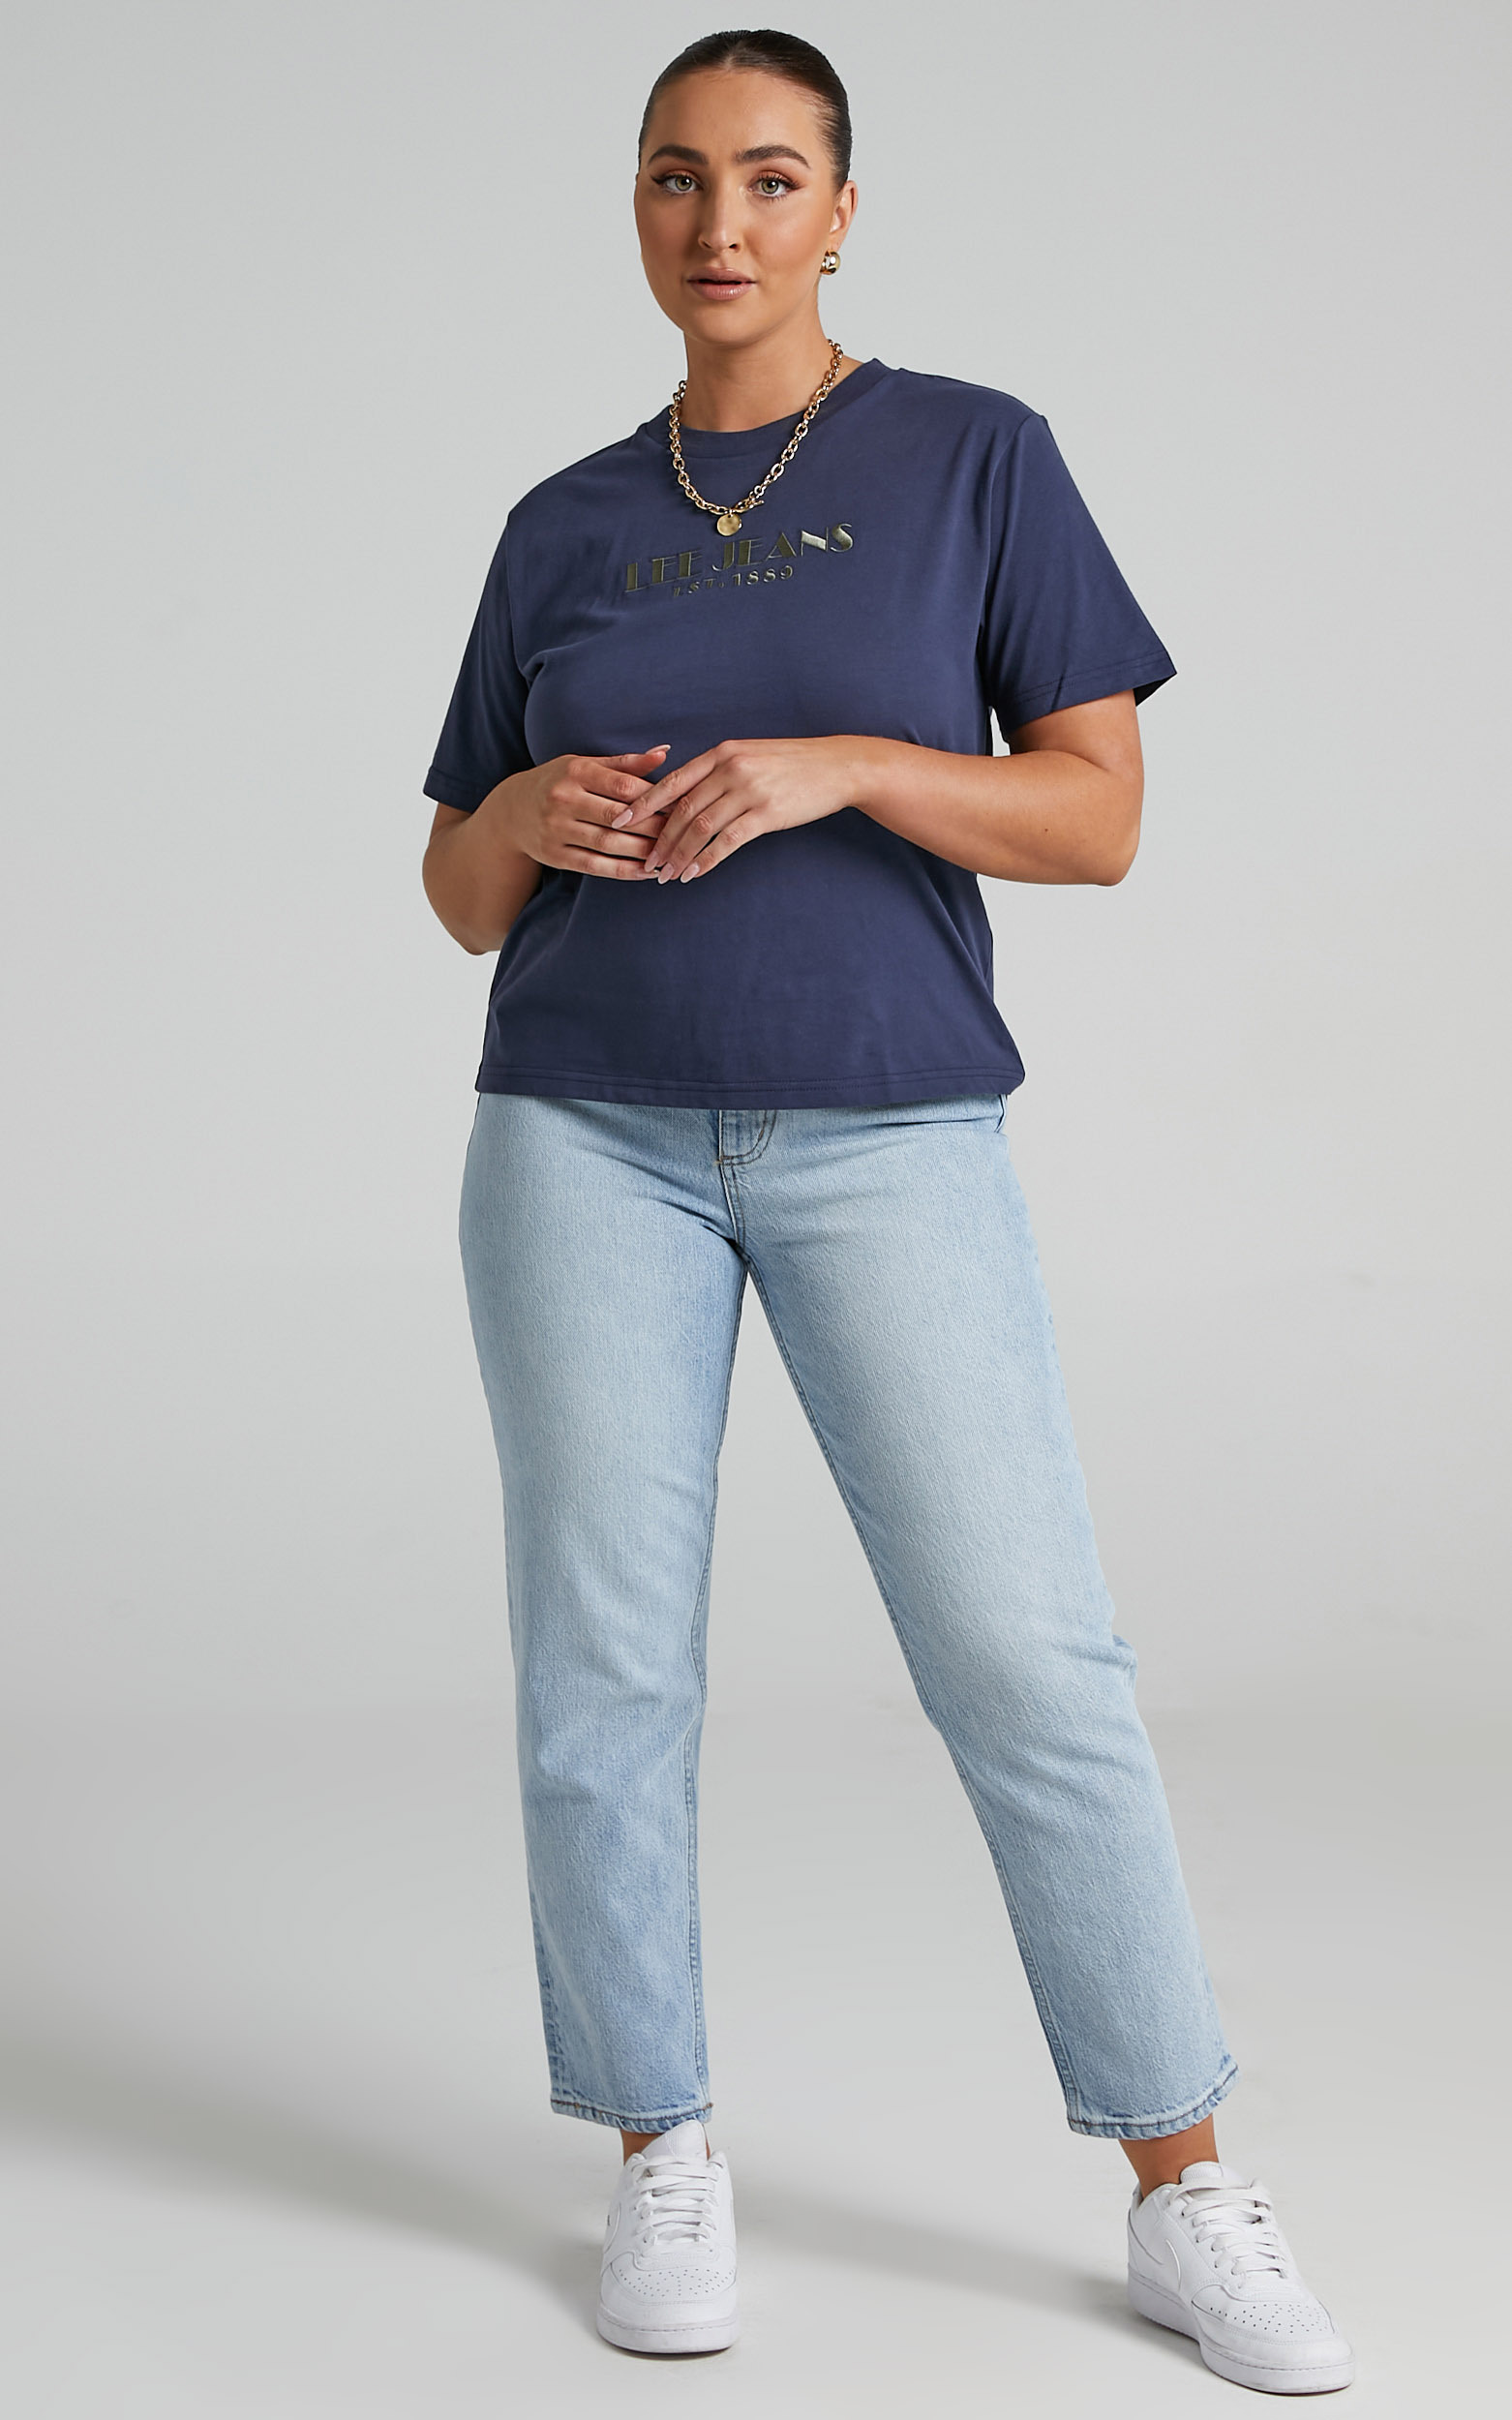 Lee - Classic Tee in French Navy - 06, BLU1, hi-res image number null